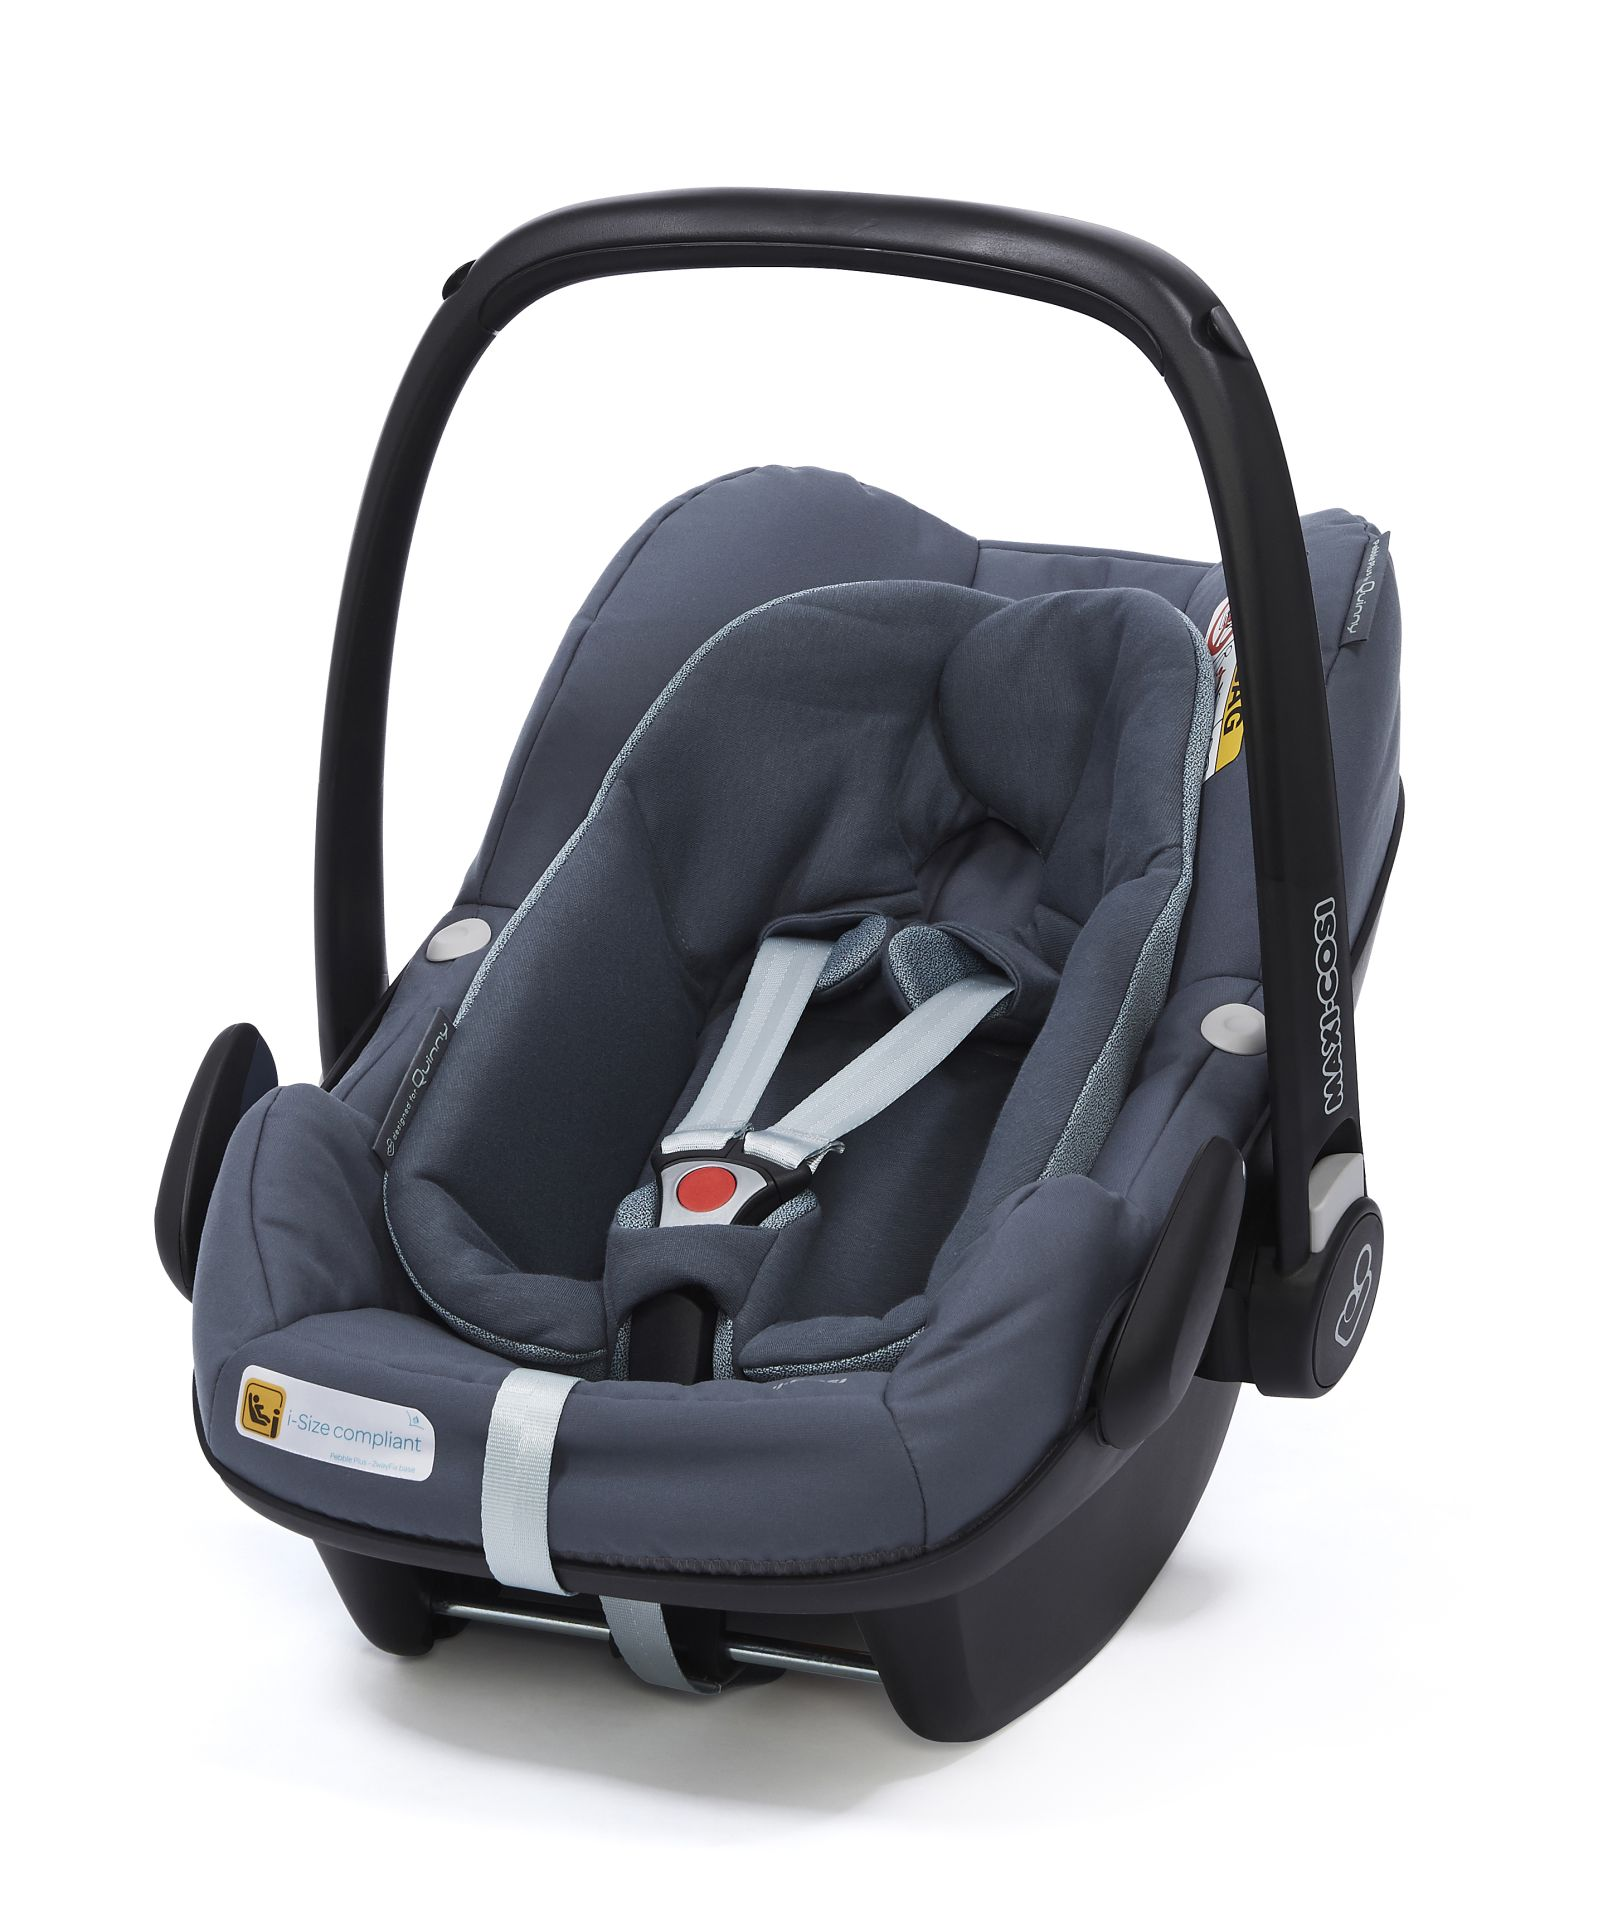 Babyschale Cybex Flugzeug Maxi Cosi Babyschale Pebble Plus